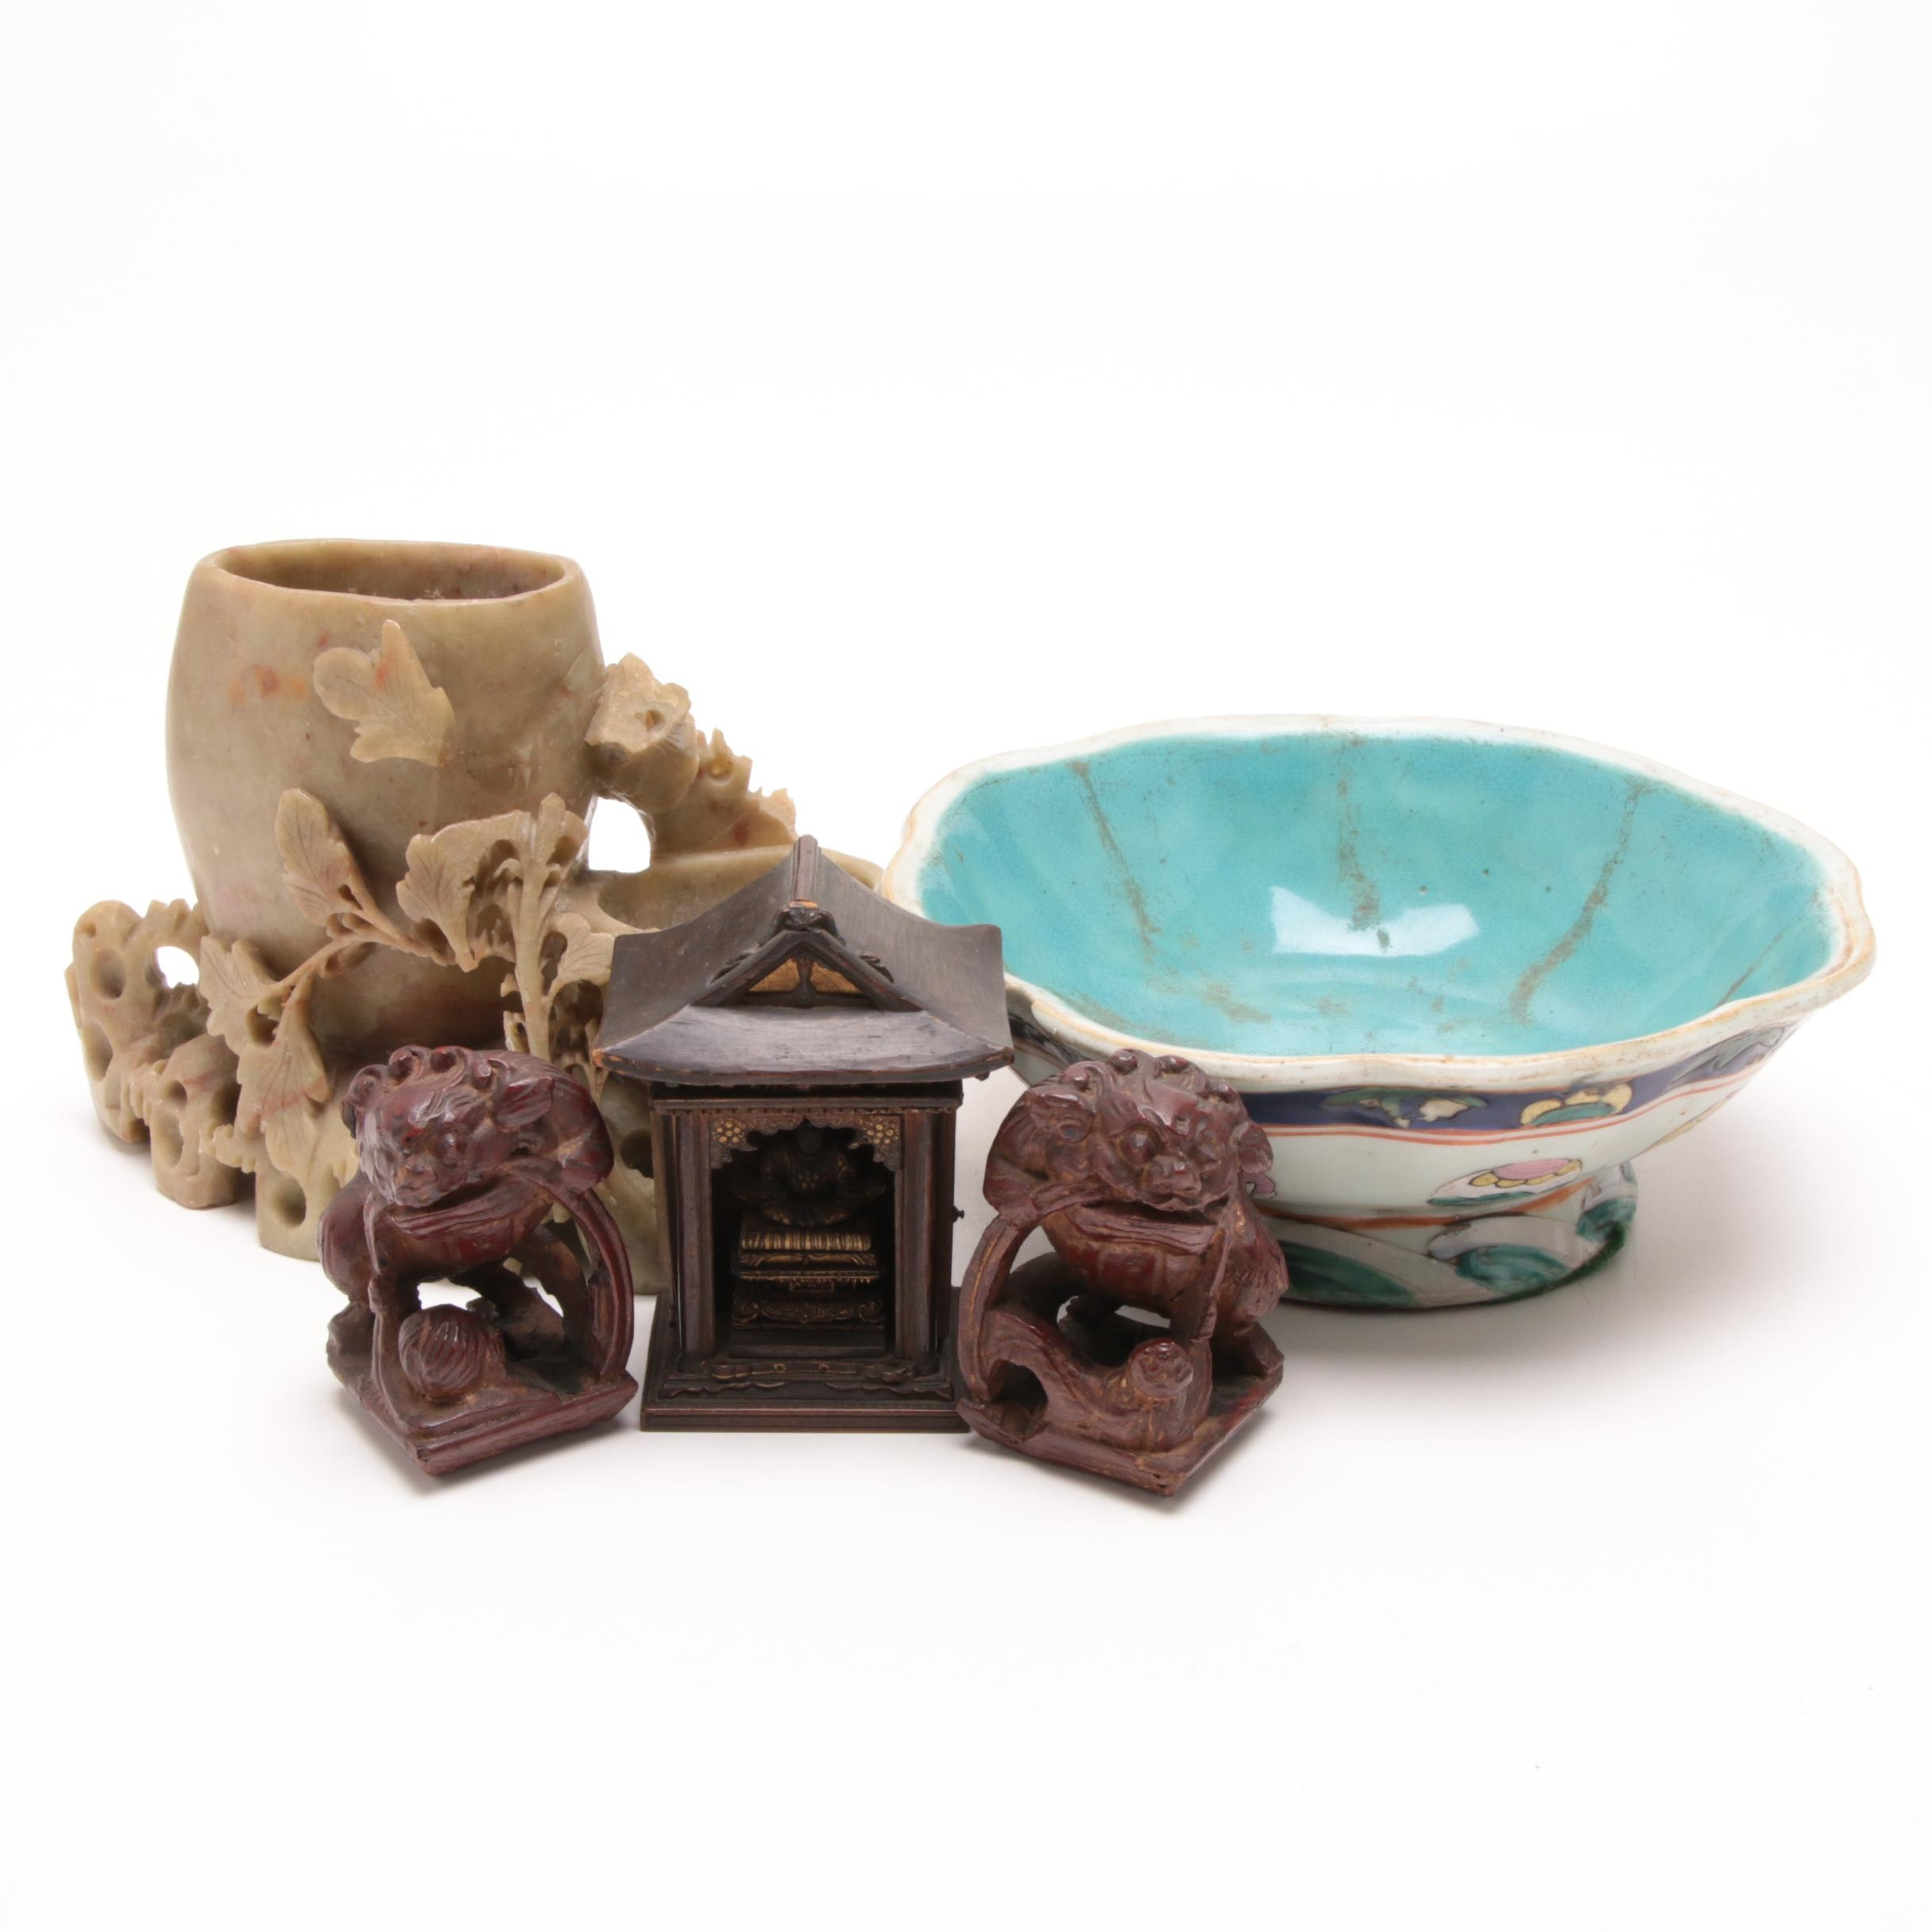 Chinese Carved Soapstone Inkwell, Wood Figurines and Ceramic Bowl